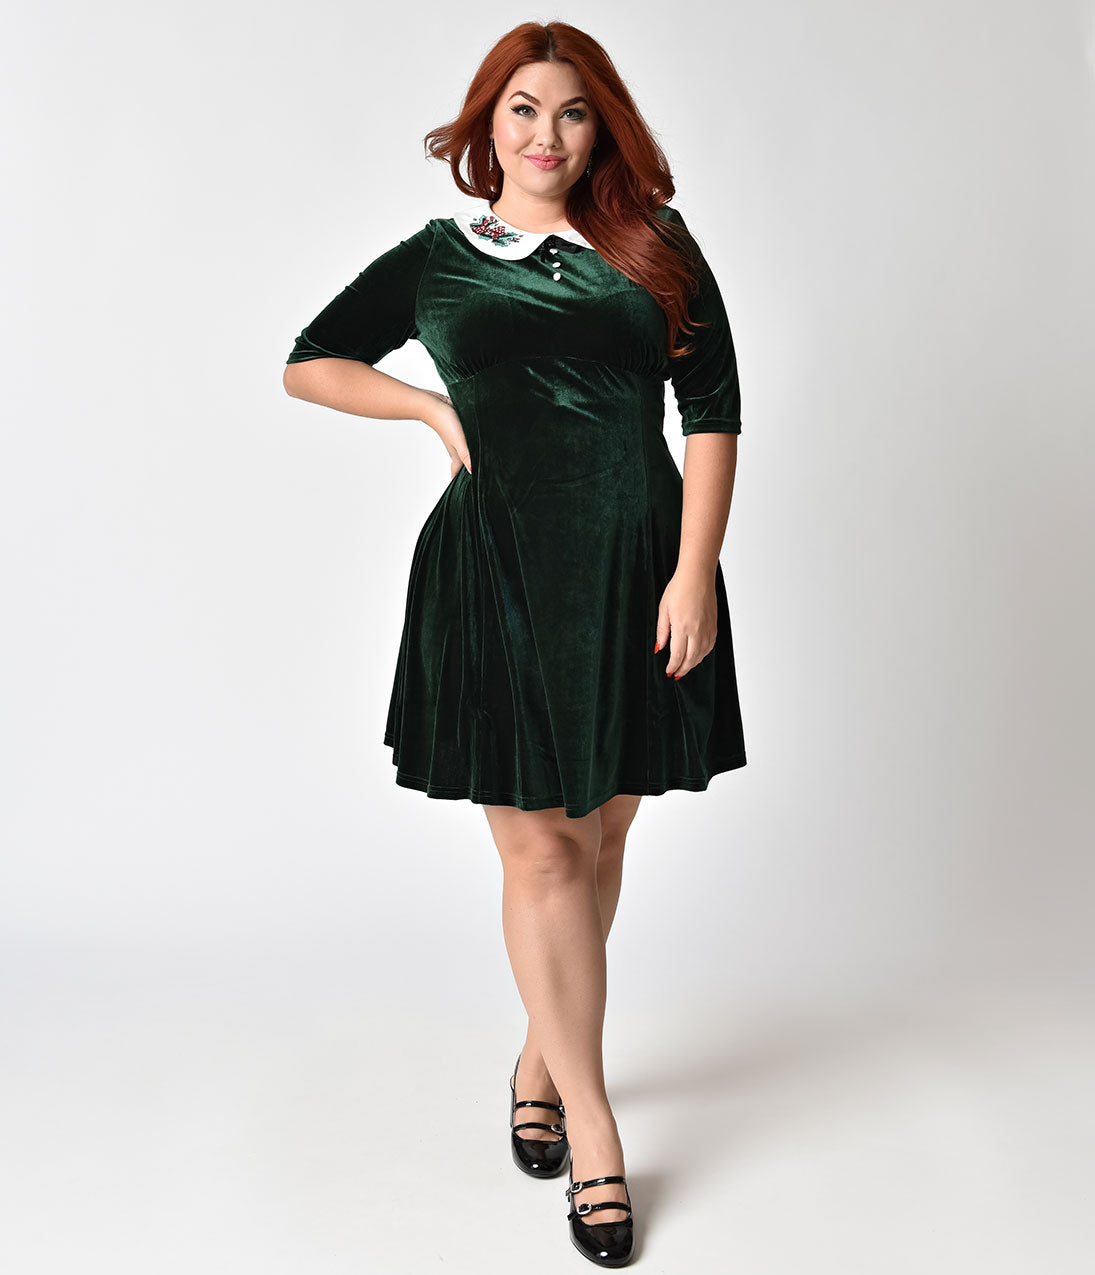 Hell Bunny Plus Size Green Velvet Merrily Mini Dress 5 0720660e-ac8e-4610-be99-f3047002df6c.jpg v 1516931104 193ad50548b